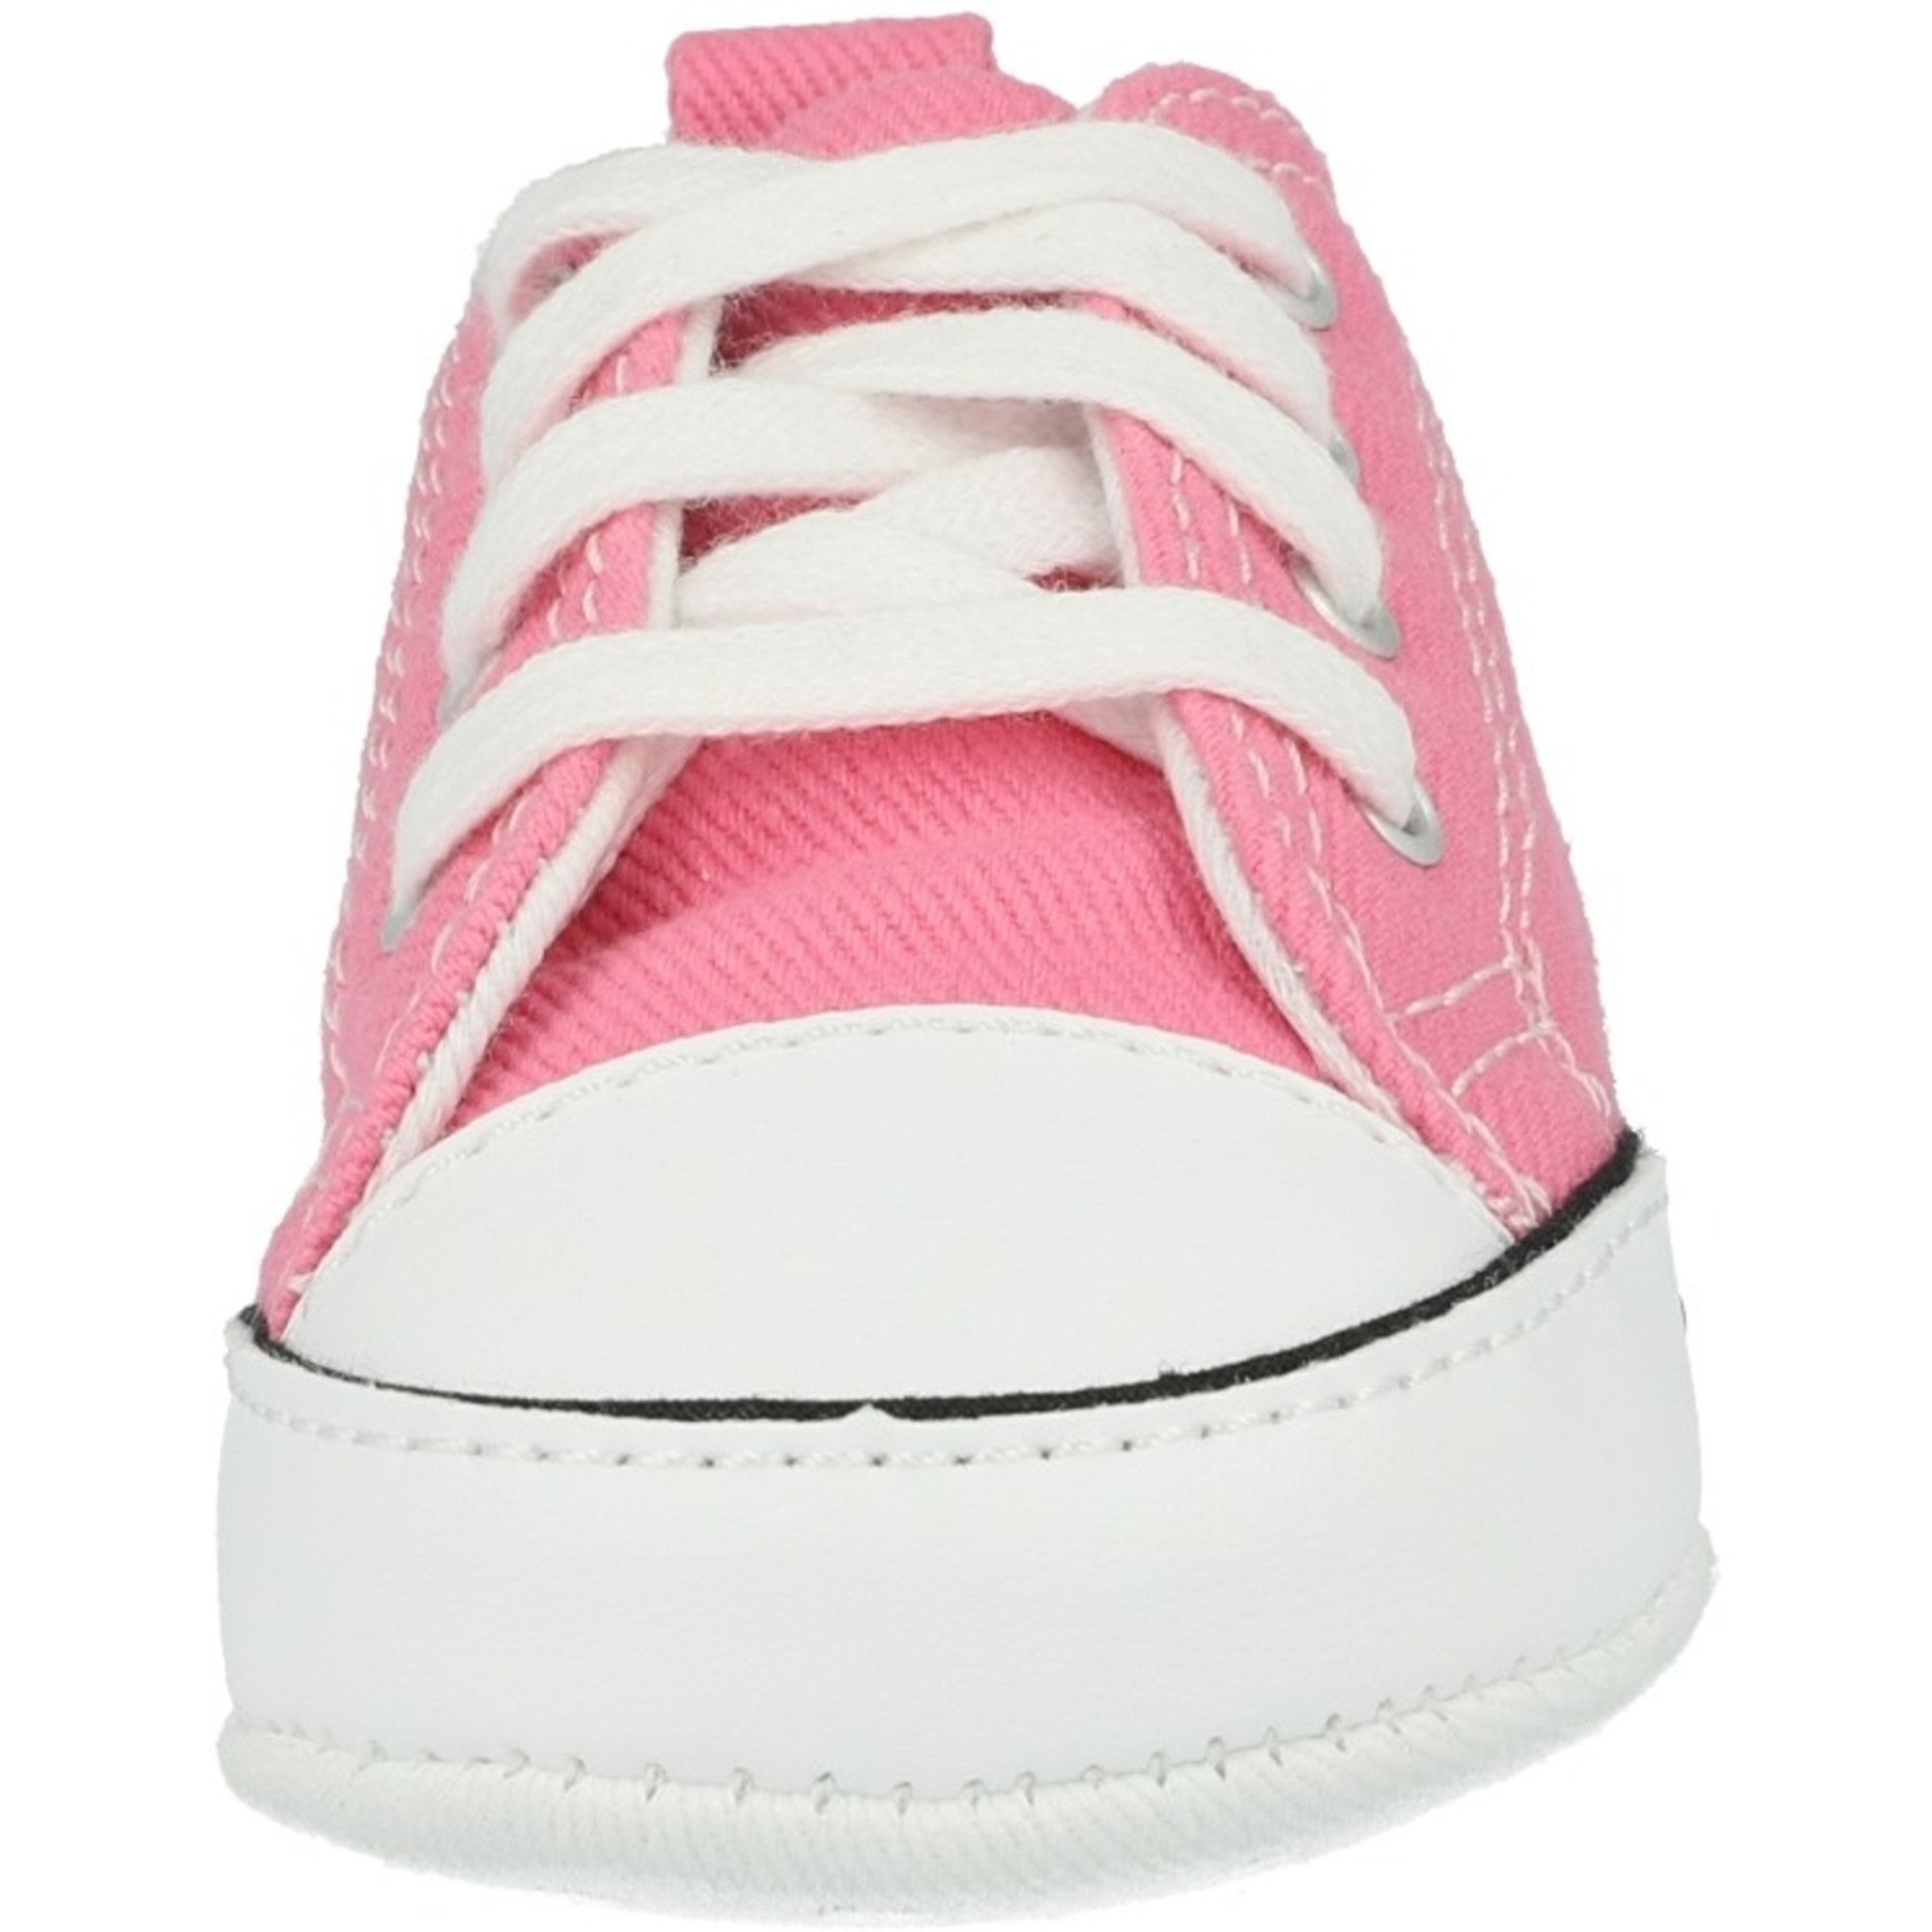 suelo Iluminar Prominente  Converse Chuck Taylor First Star Pink Textile - Soft Soles Shoes - Awesome  Shoes